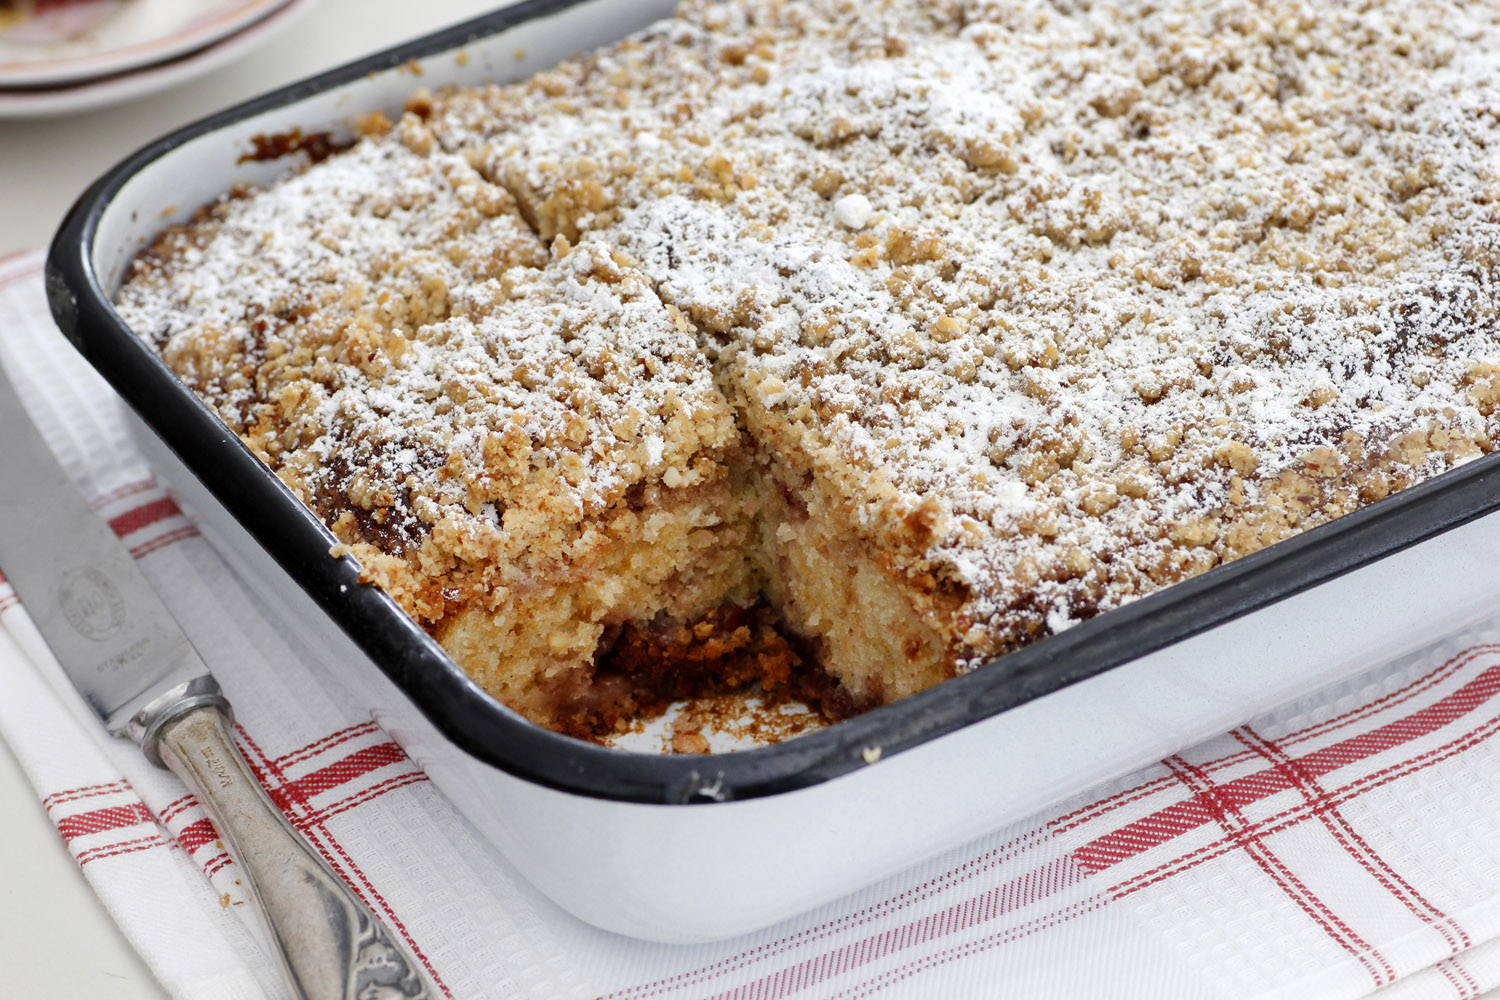 Streusel Cake with Jam